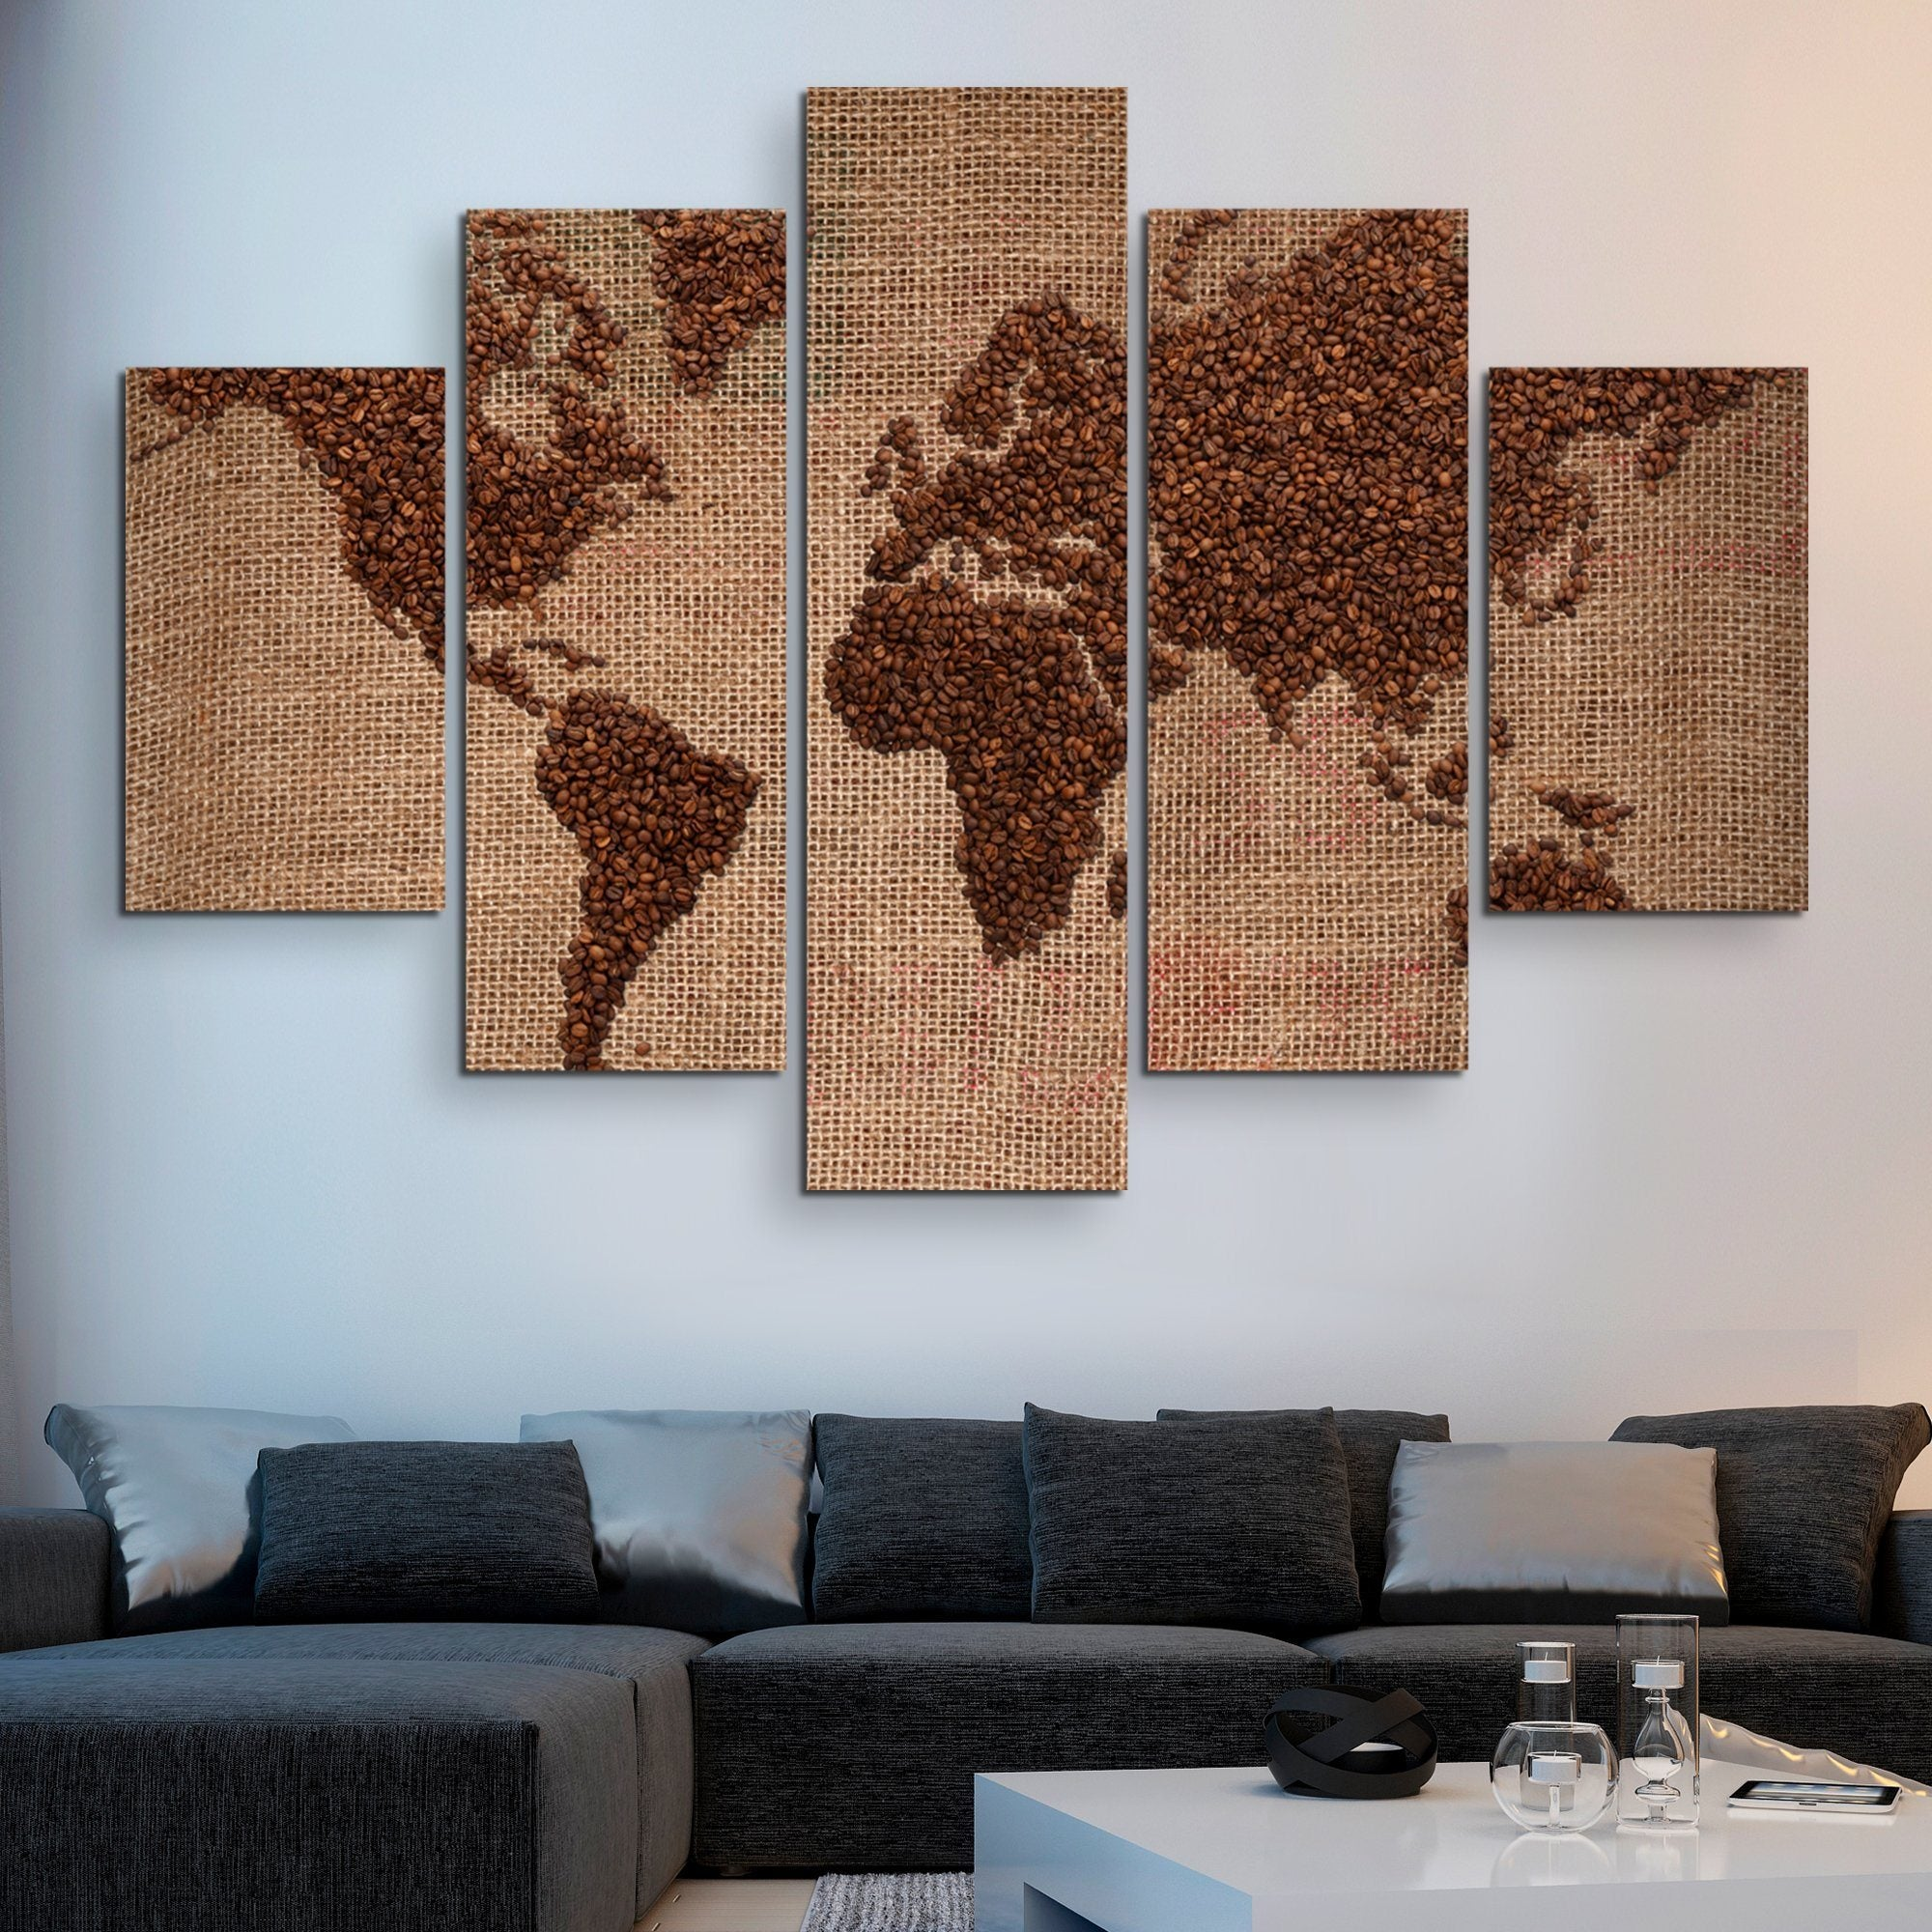 5 piece World of Coffee wall art